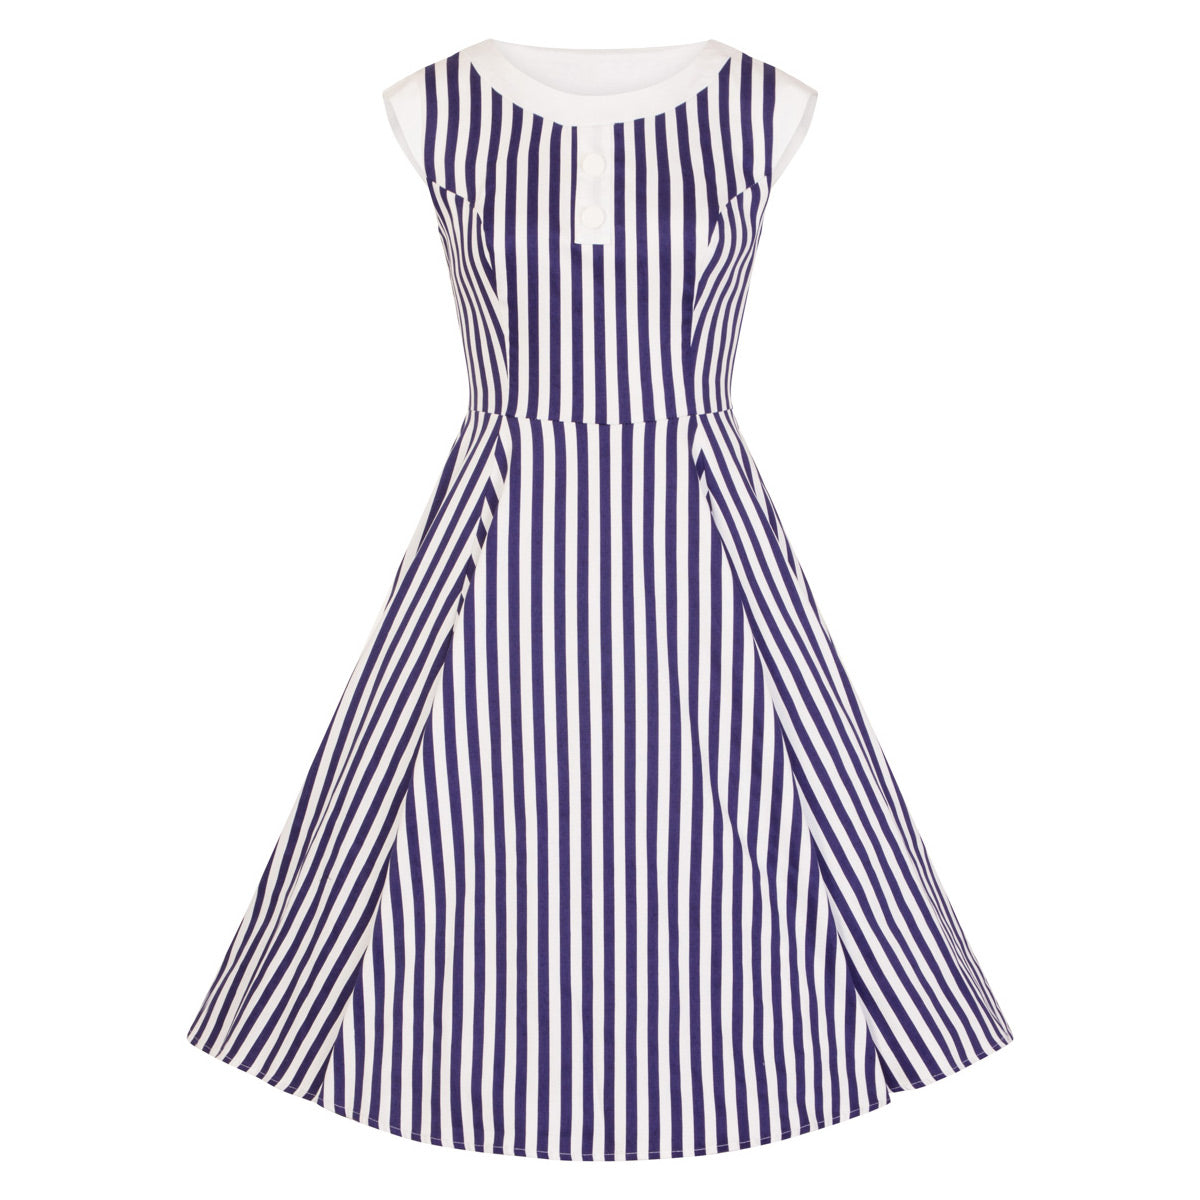 f8bf8c4613 Navy Blue and White Striped Sleeveless Rockabilly 50s Swing Dress - Pretty  Kitty Fashion